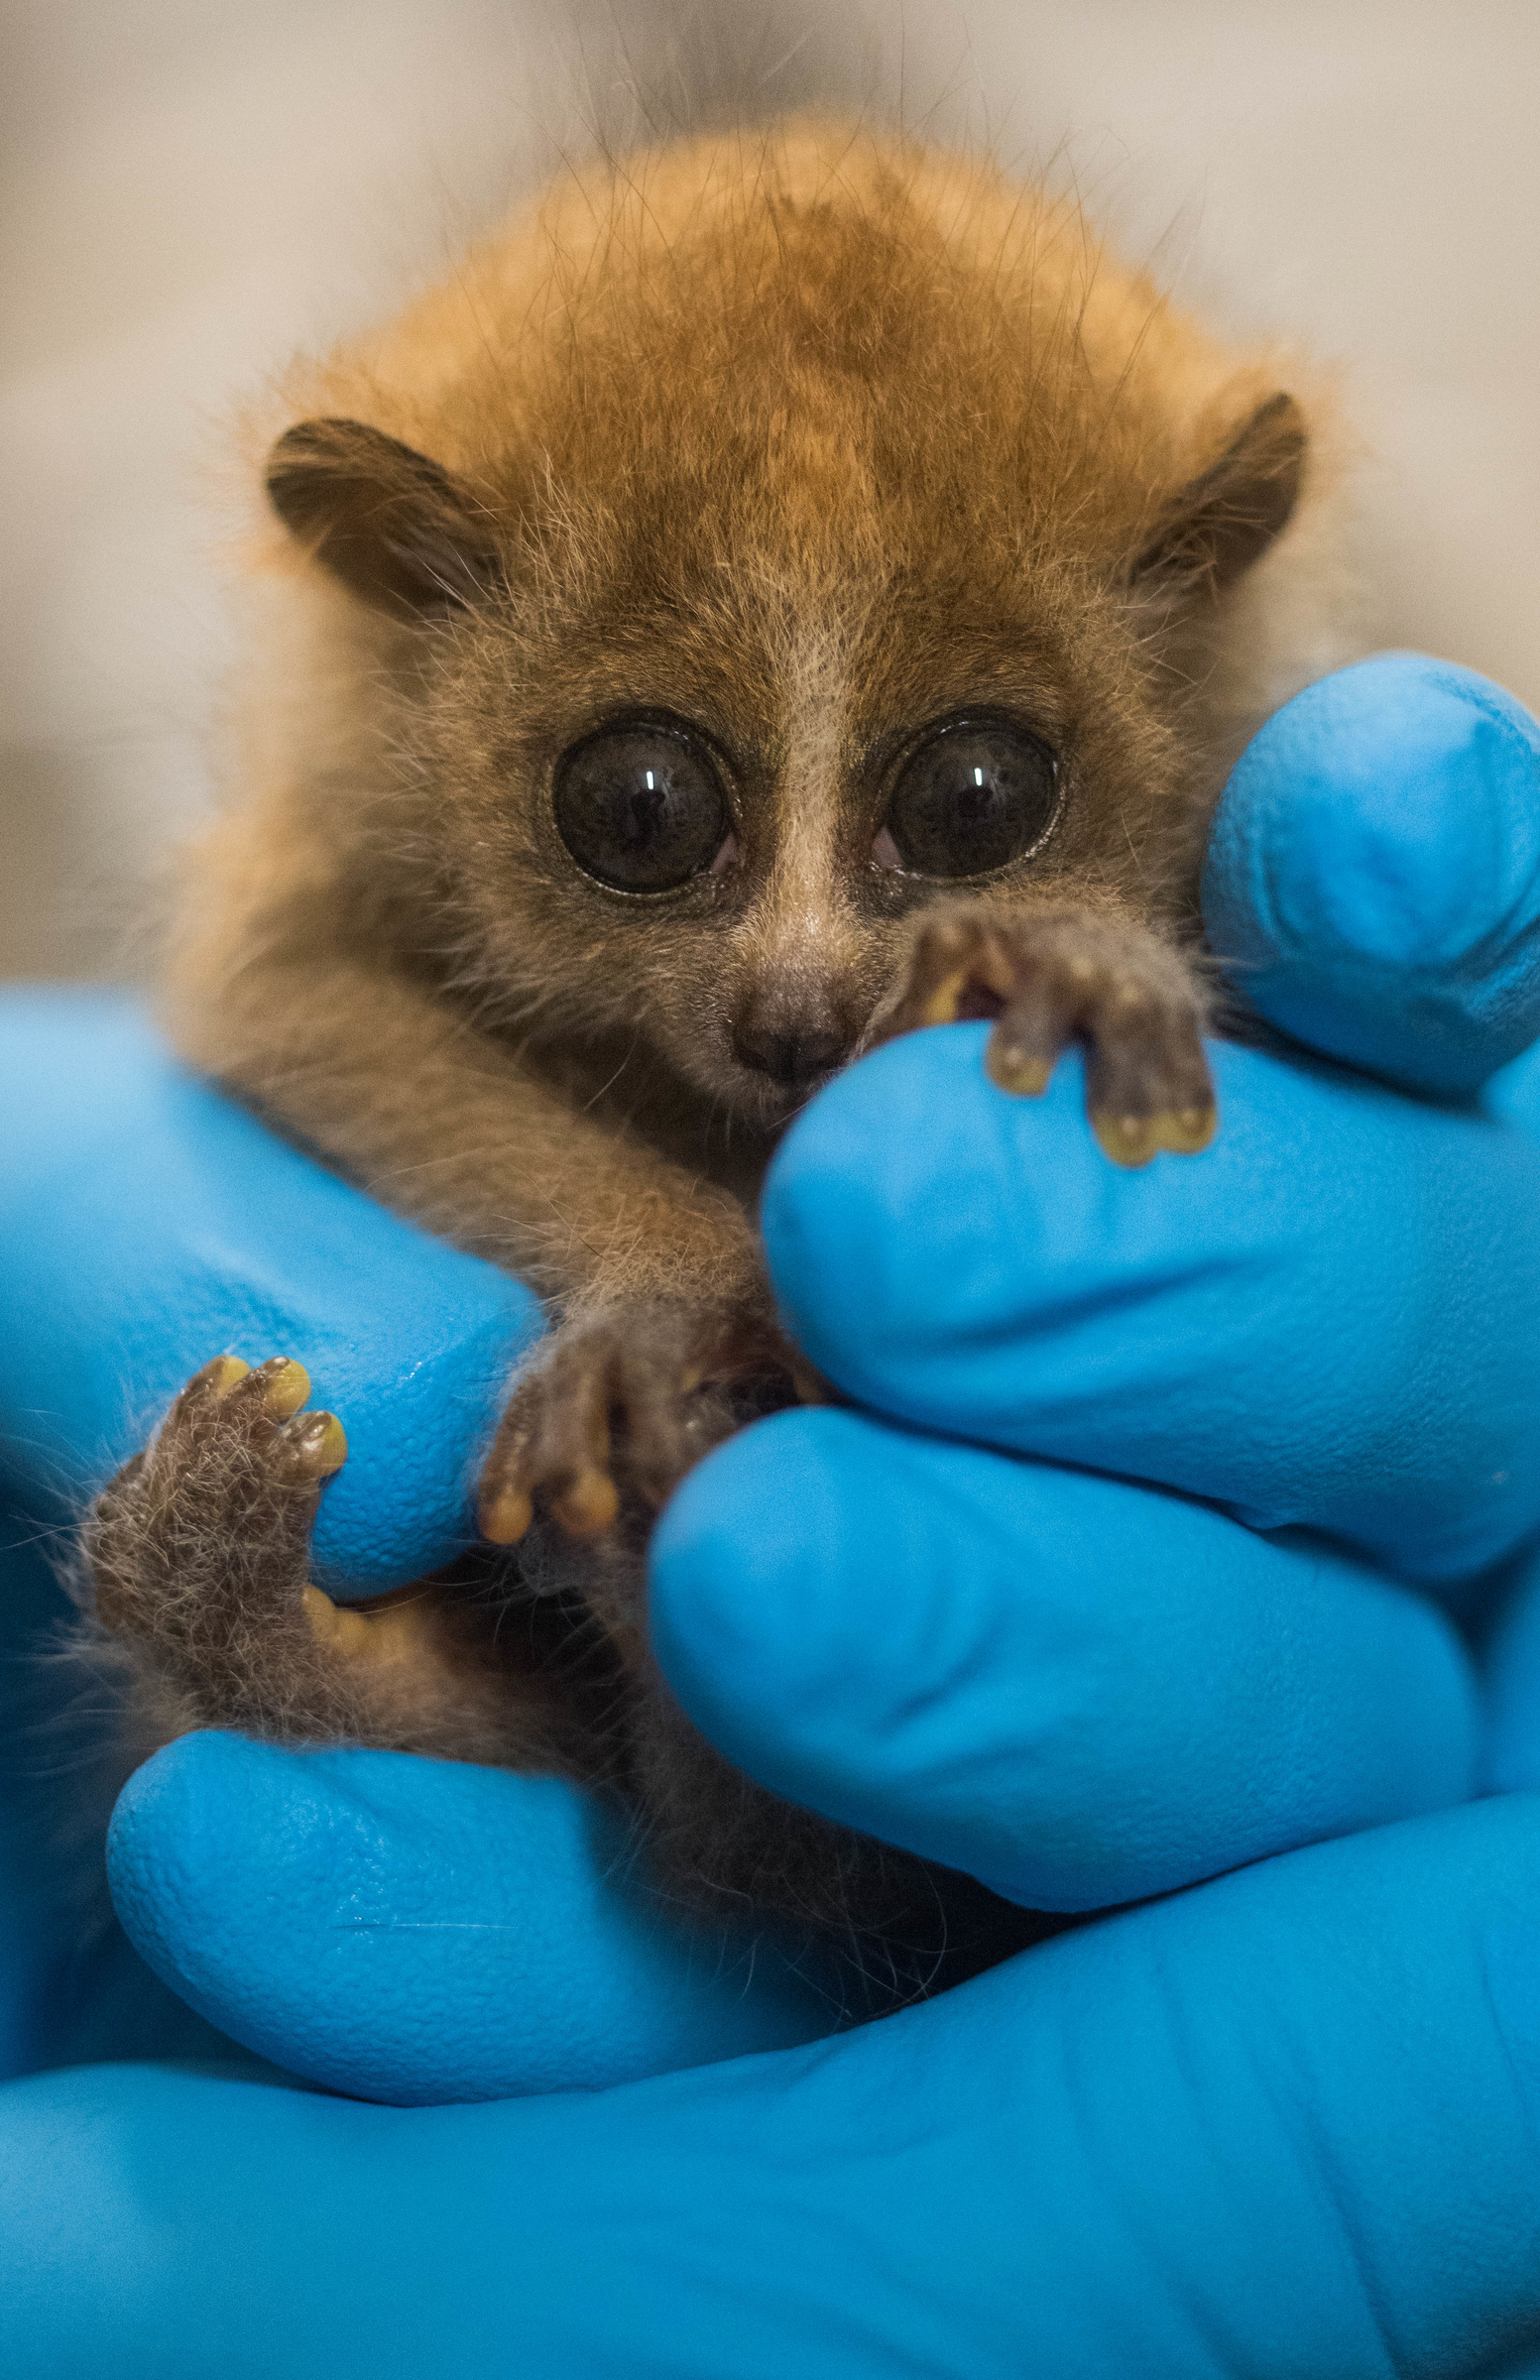 Baby pygmy slow loris born at Cleveland Metroparks Zoo